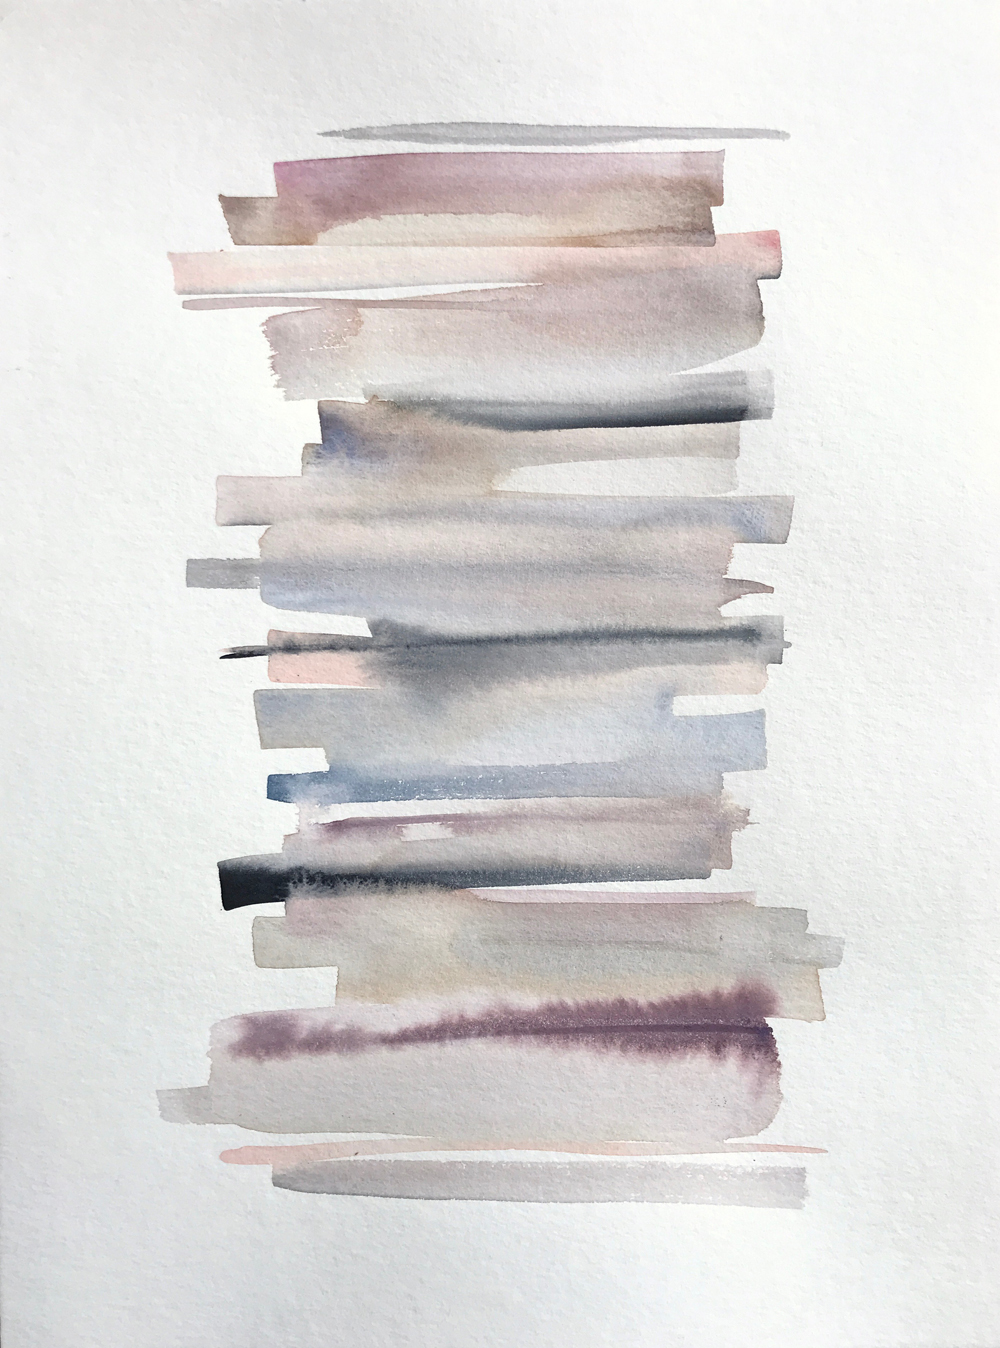 Stacks 15_ Watercolour Painting with pastel coloured stripes that look like piled up books